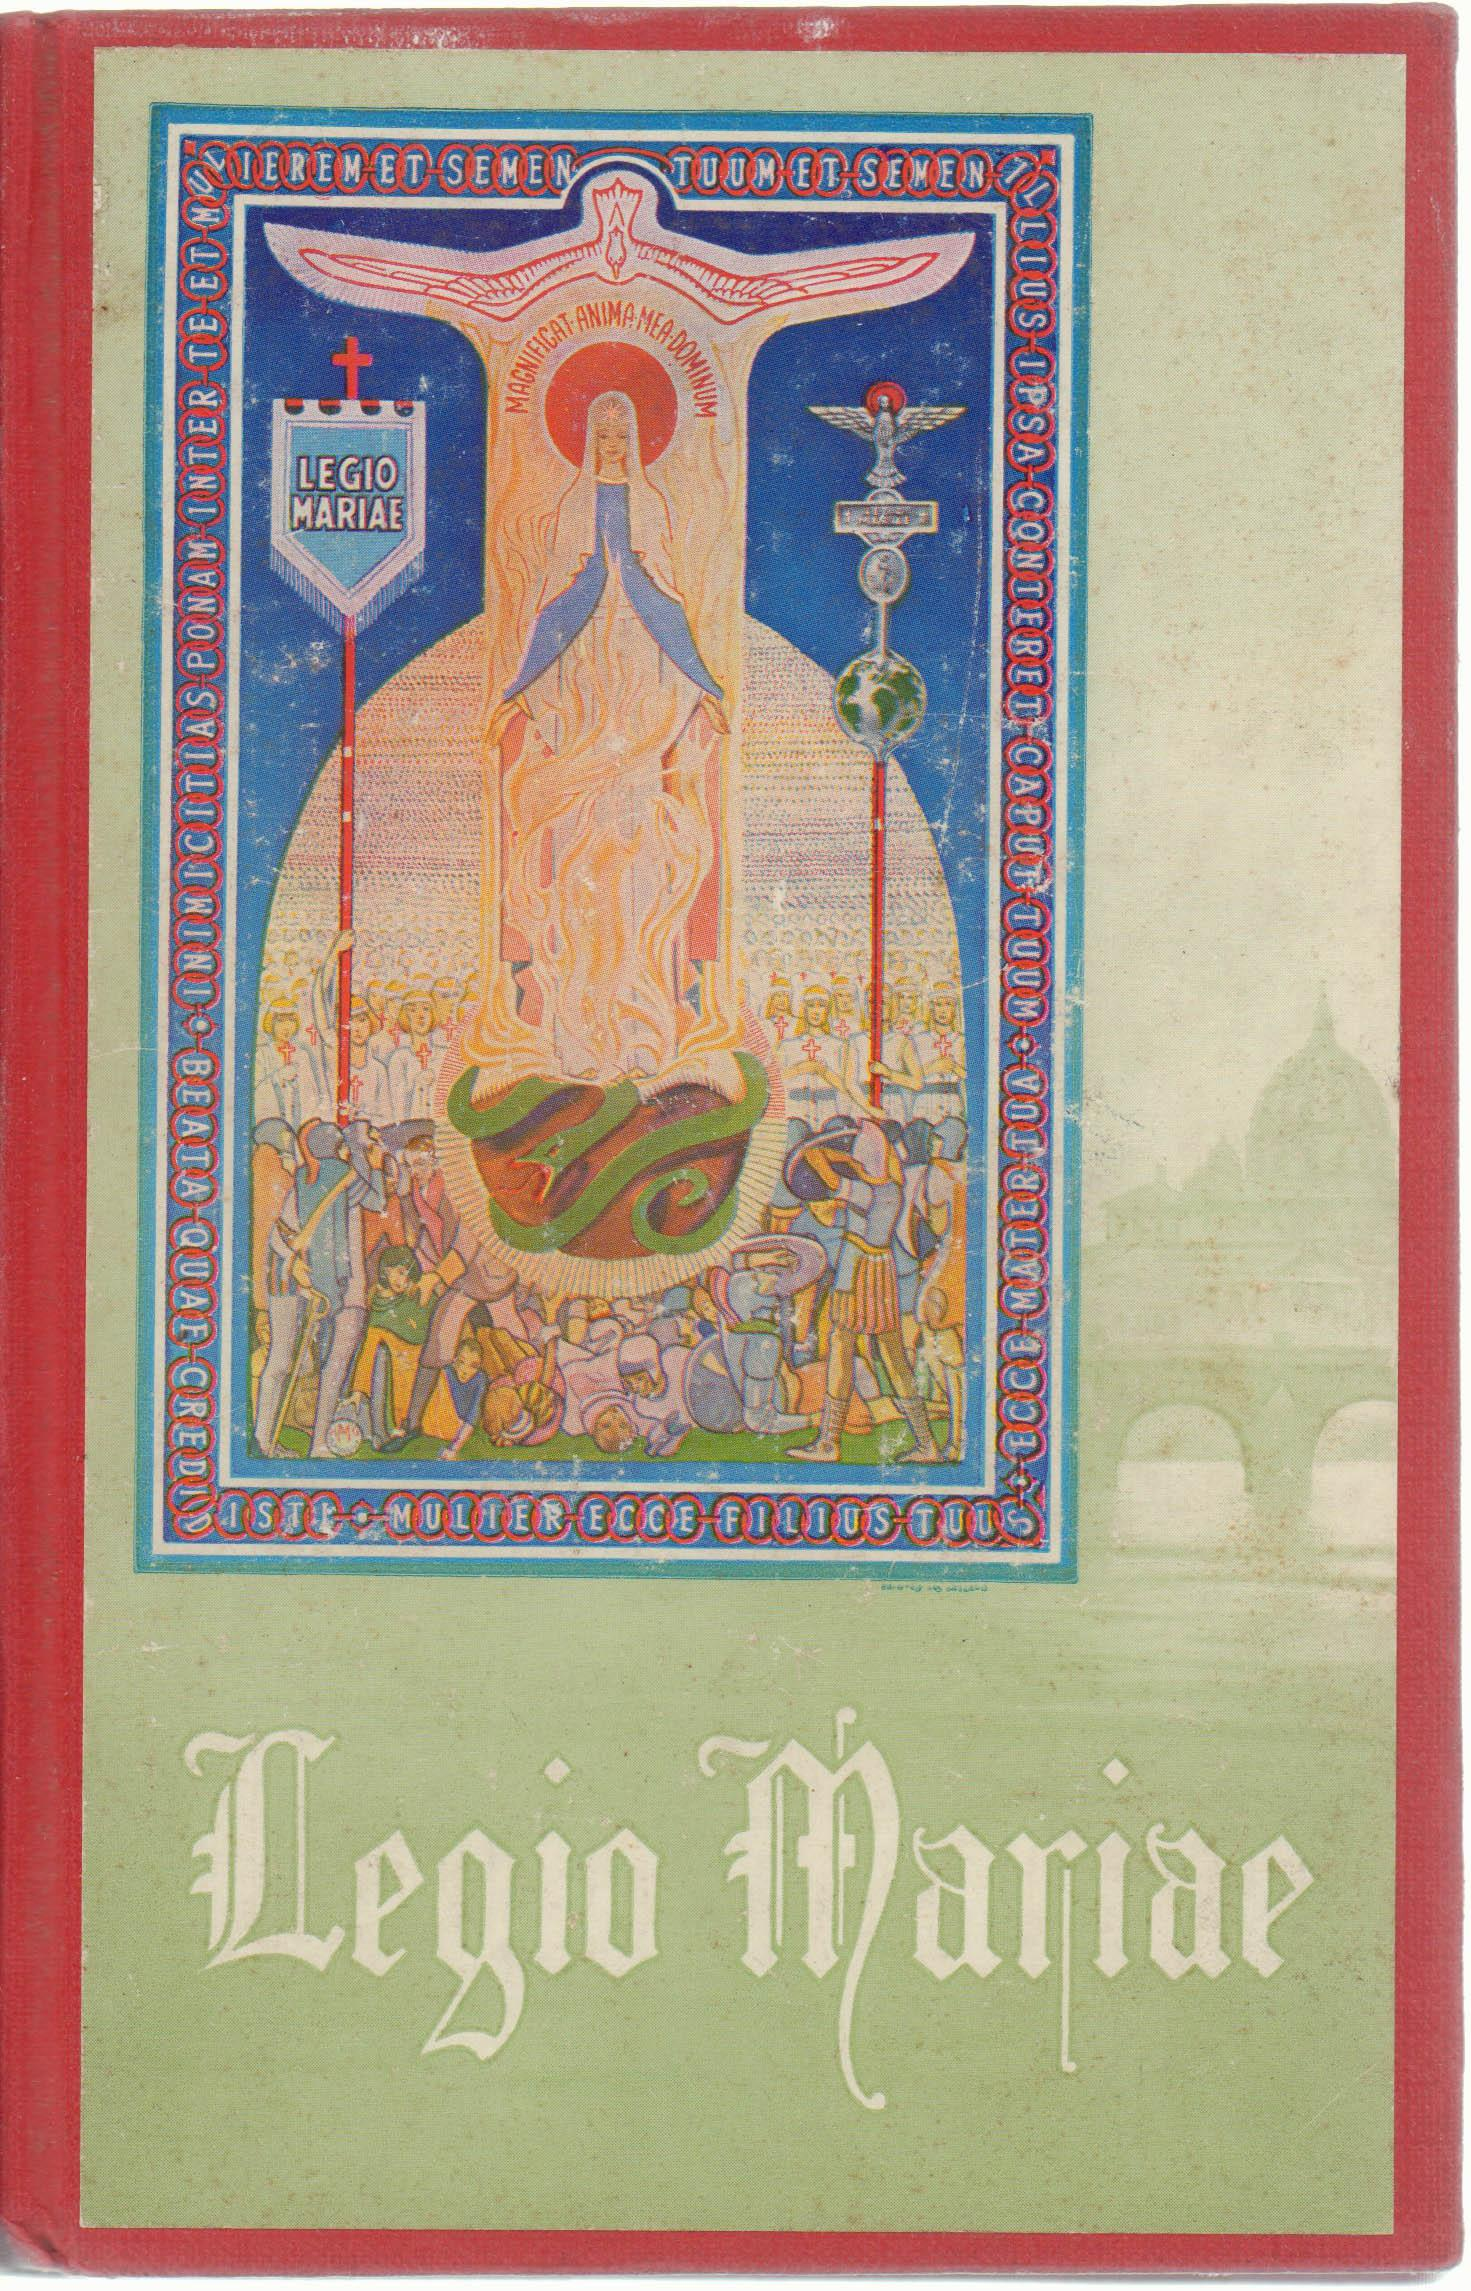 1962 The Official Handbook Of The Legion Of Mary Book